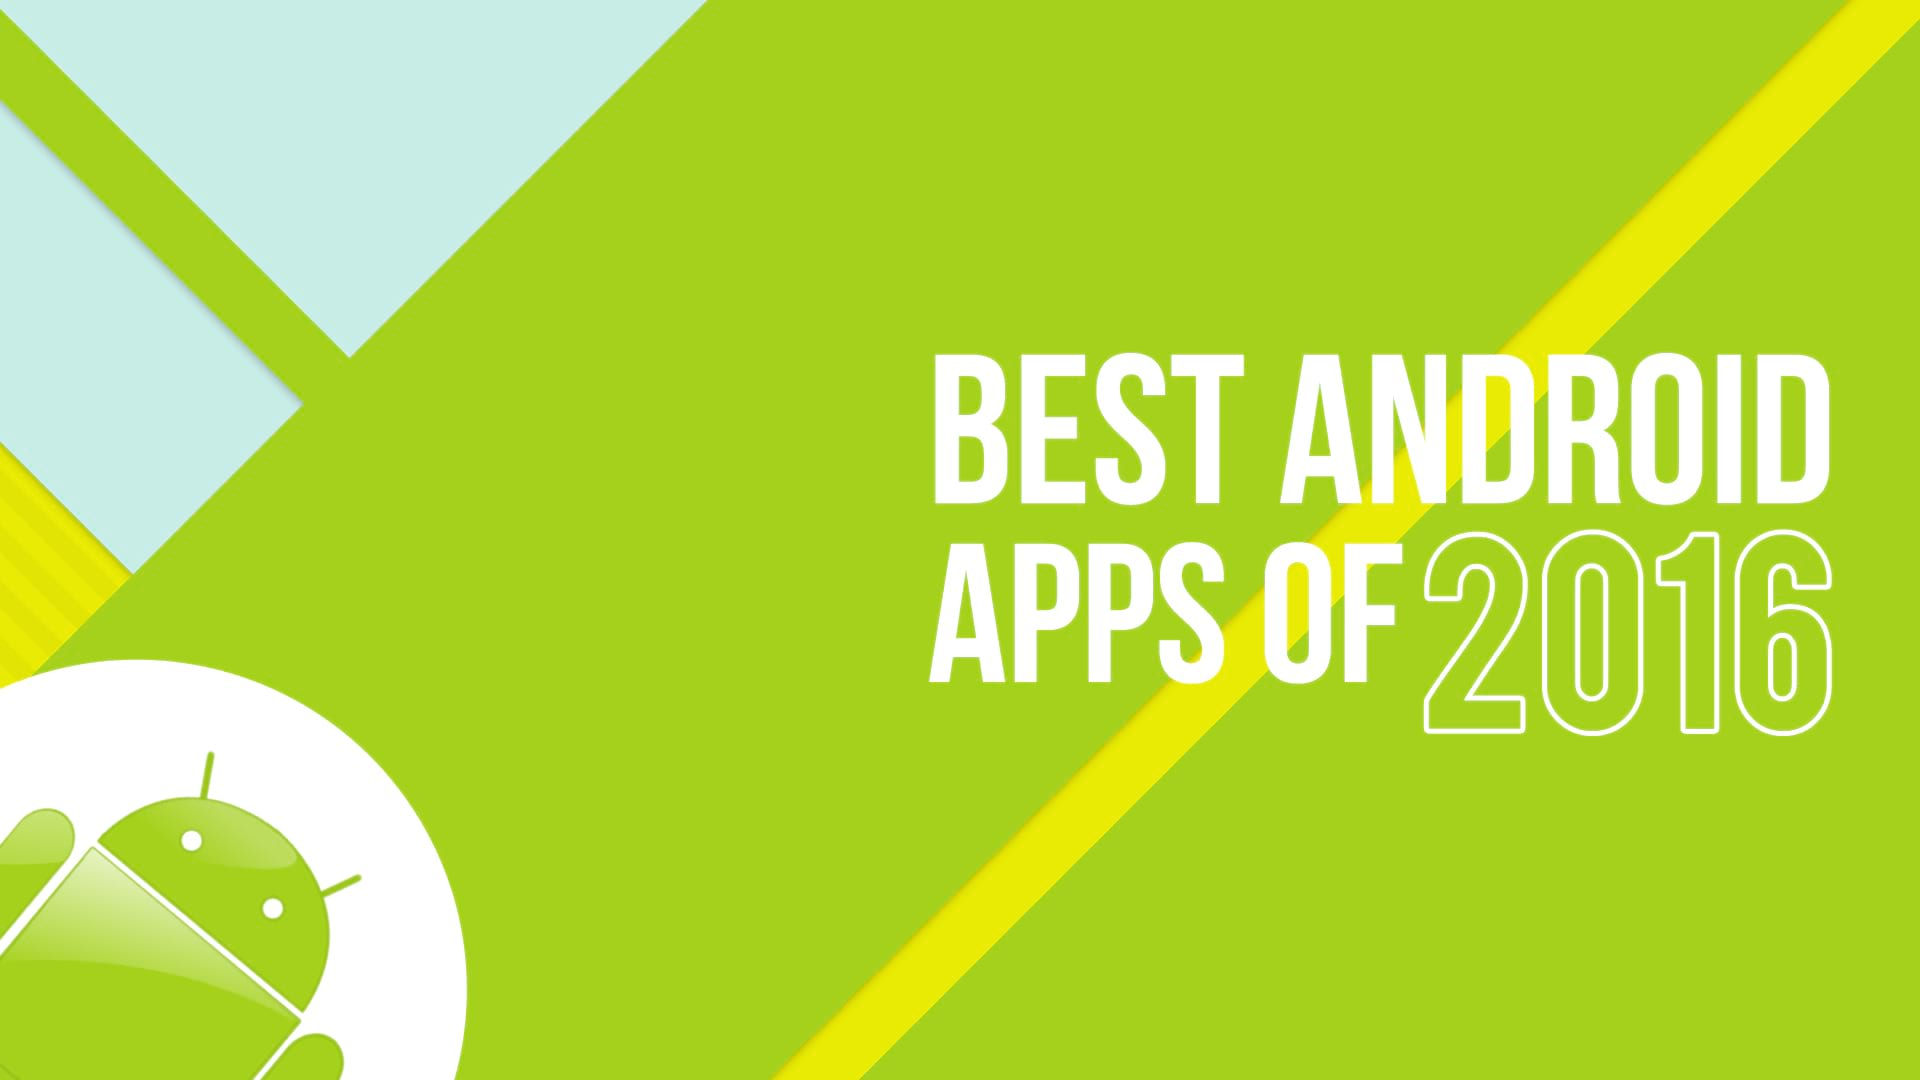 best-android-apps-of-2016